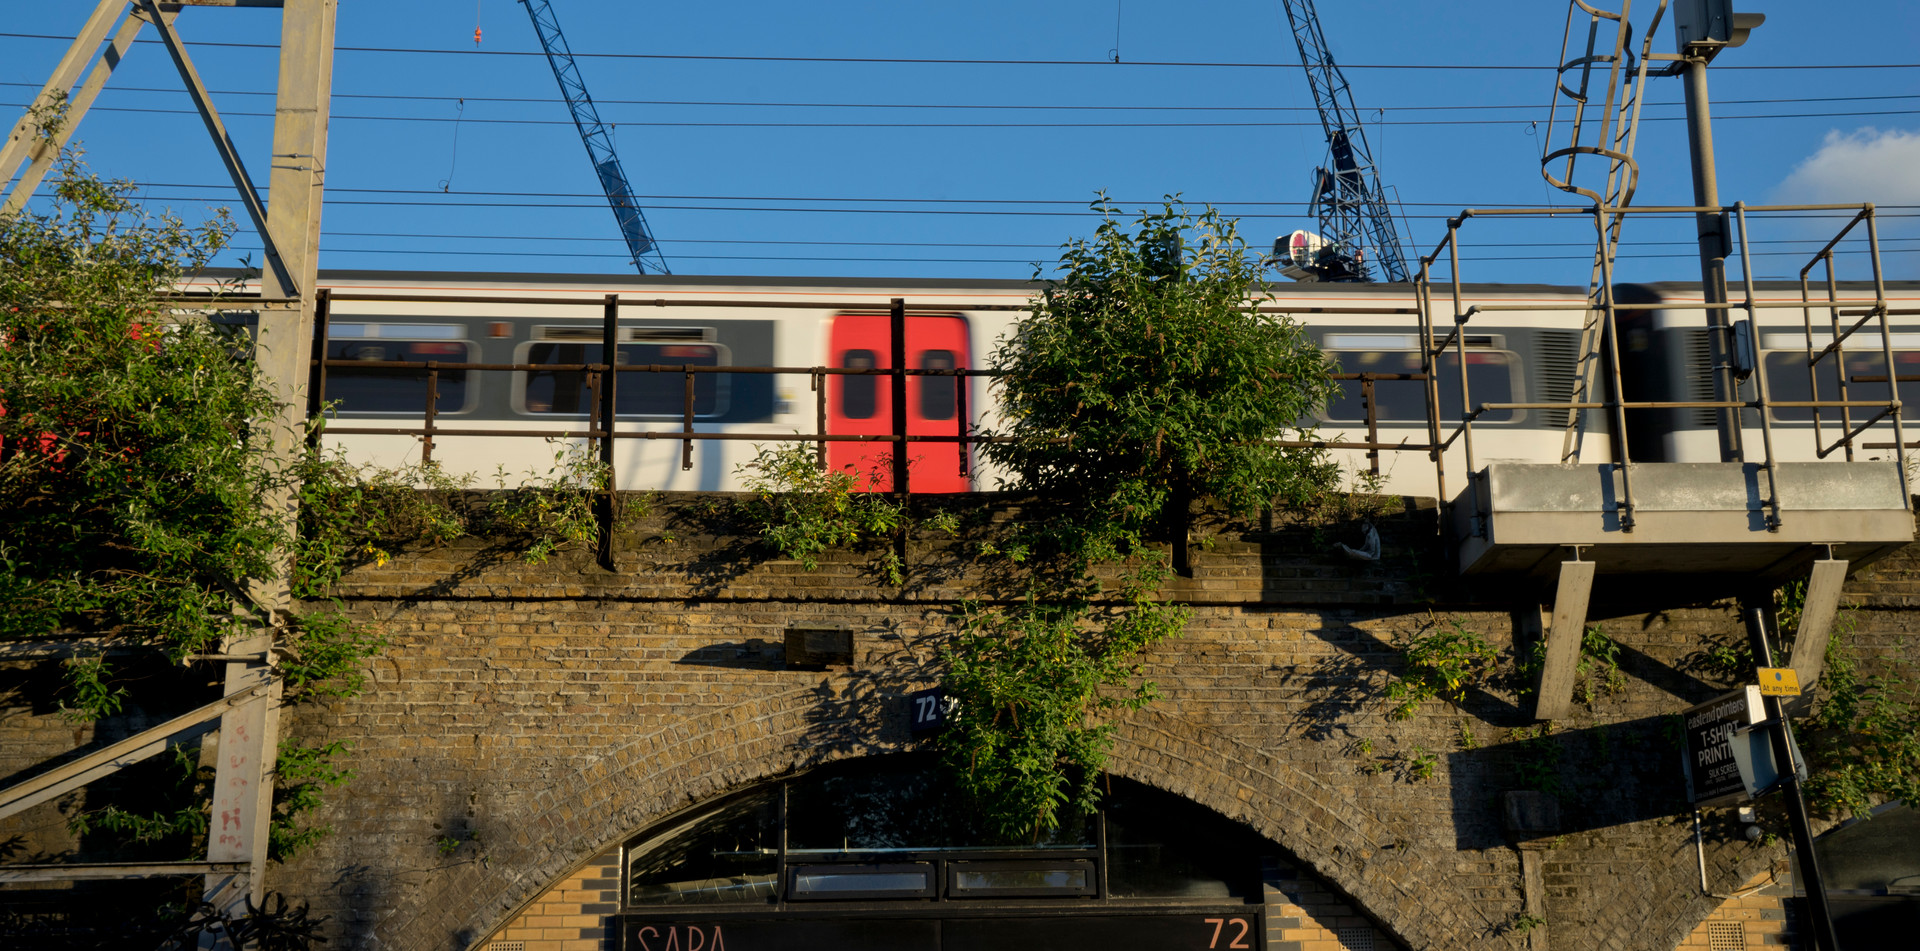 Small business under railway arches by train and overground station, to be redeveloped to build luxury housing and new fashionable shops in Hackney, London